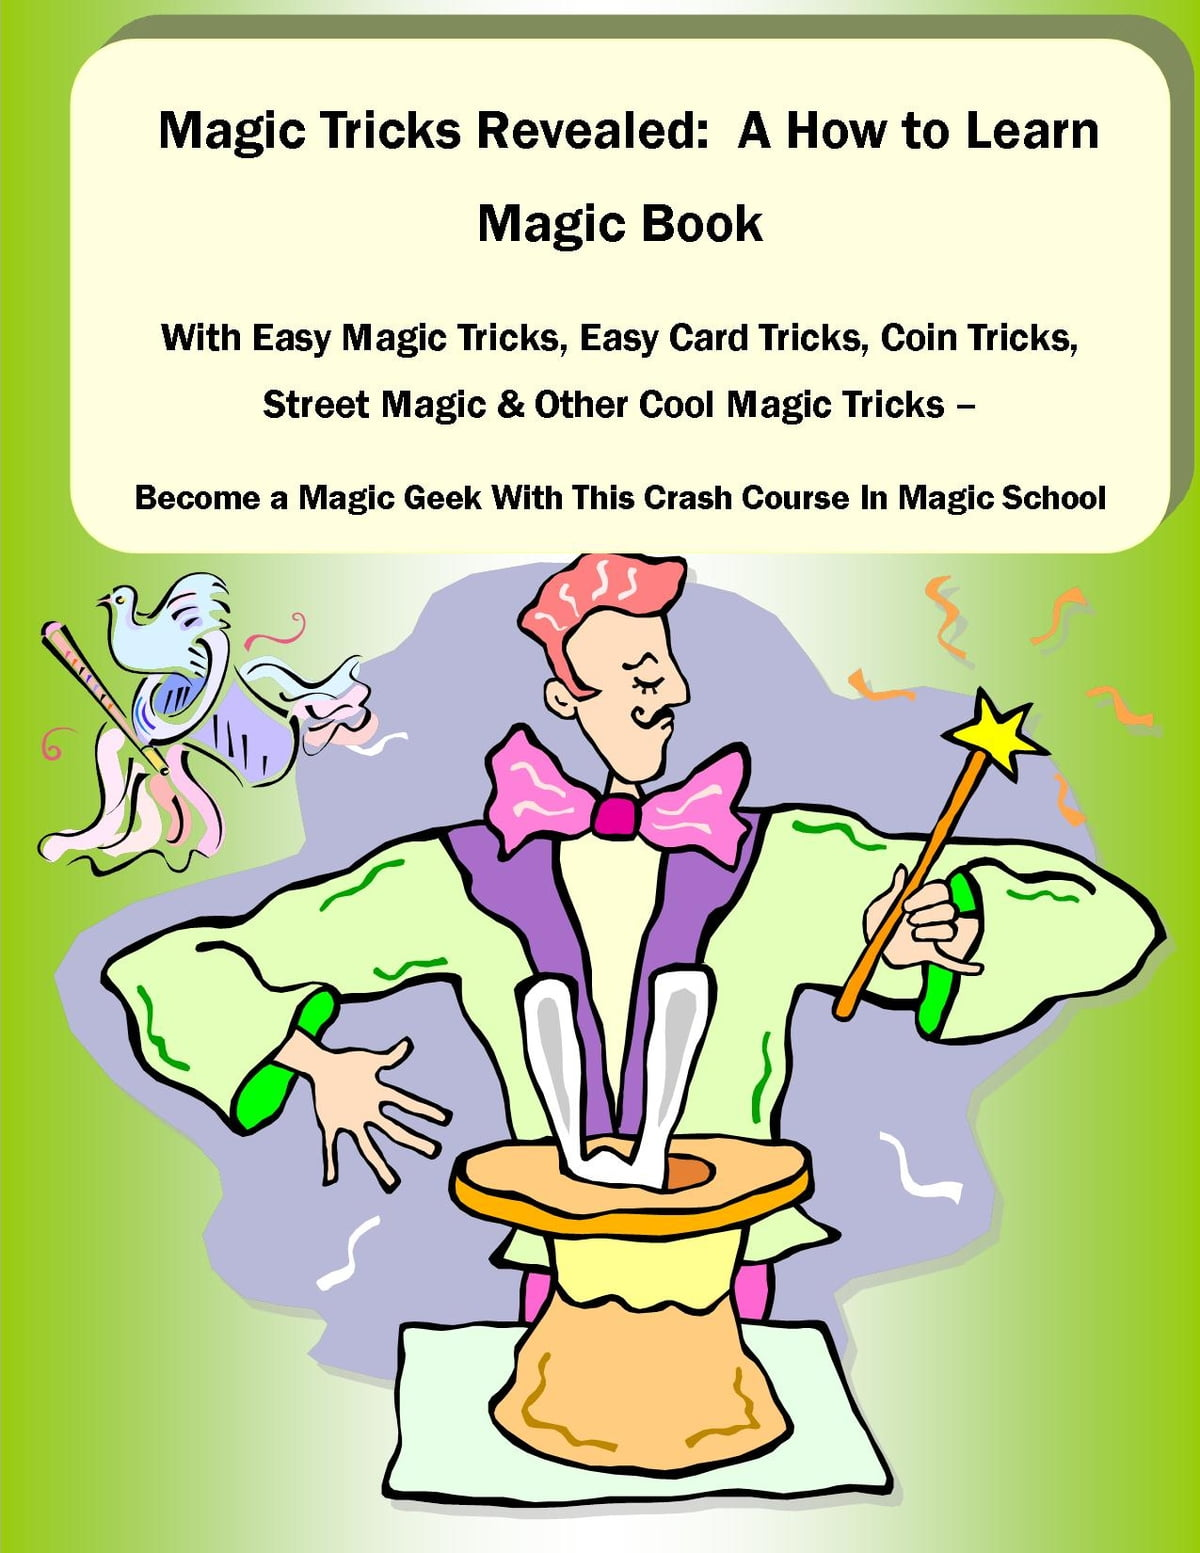 Ebook magic download easy learn